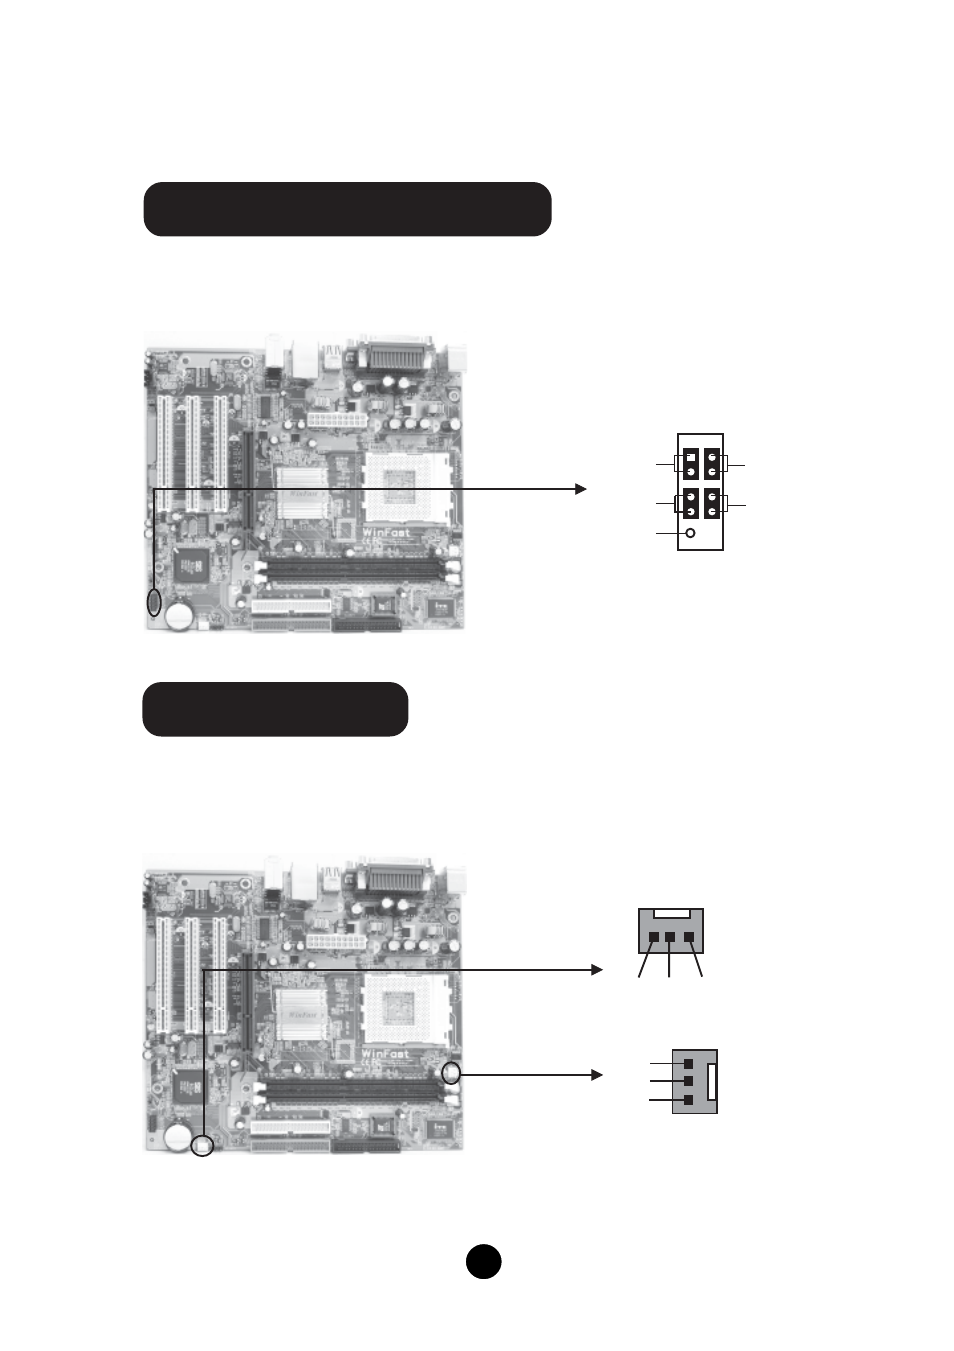 Front Panel Connector Fp1 Cpu Fan Fan1 Foxconn K7s741gxmg 6l Computer Power Switch Wiring Diagram User Manual Page 5 10